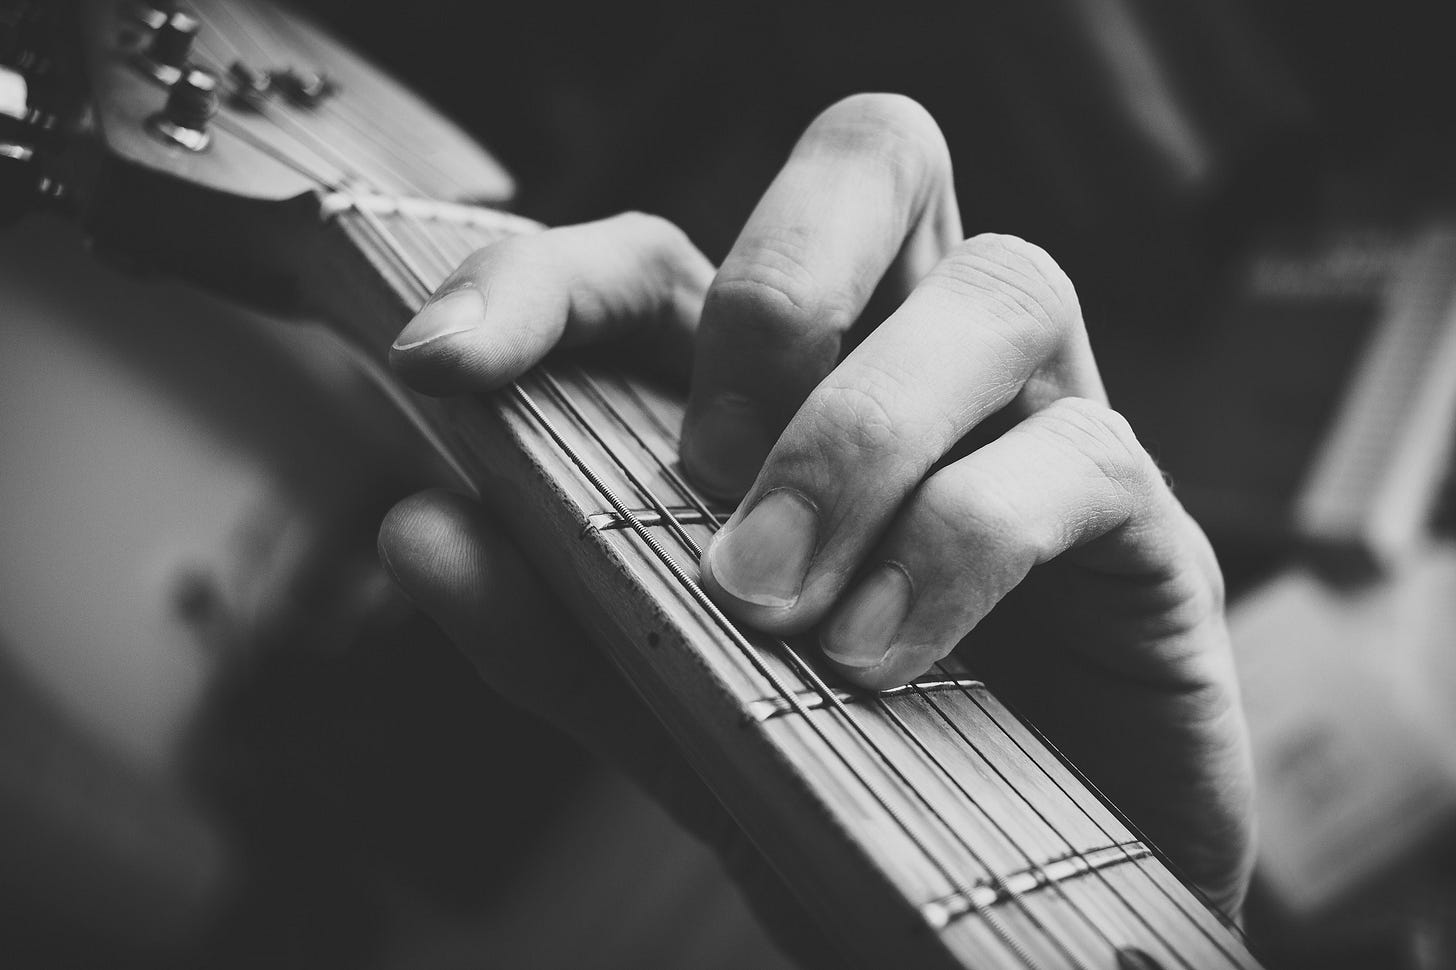 """Image of a man practising guitar for article titled """"Practice Intensely, Show up, Then See What Happens"""" by Larry G. Maguire"""